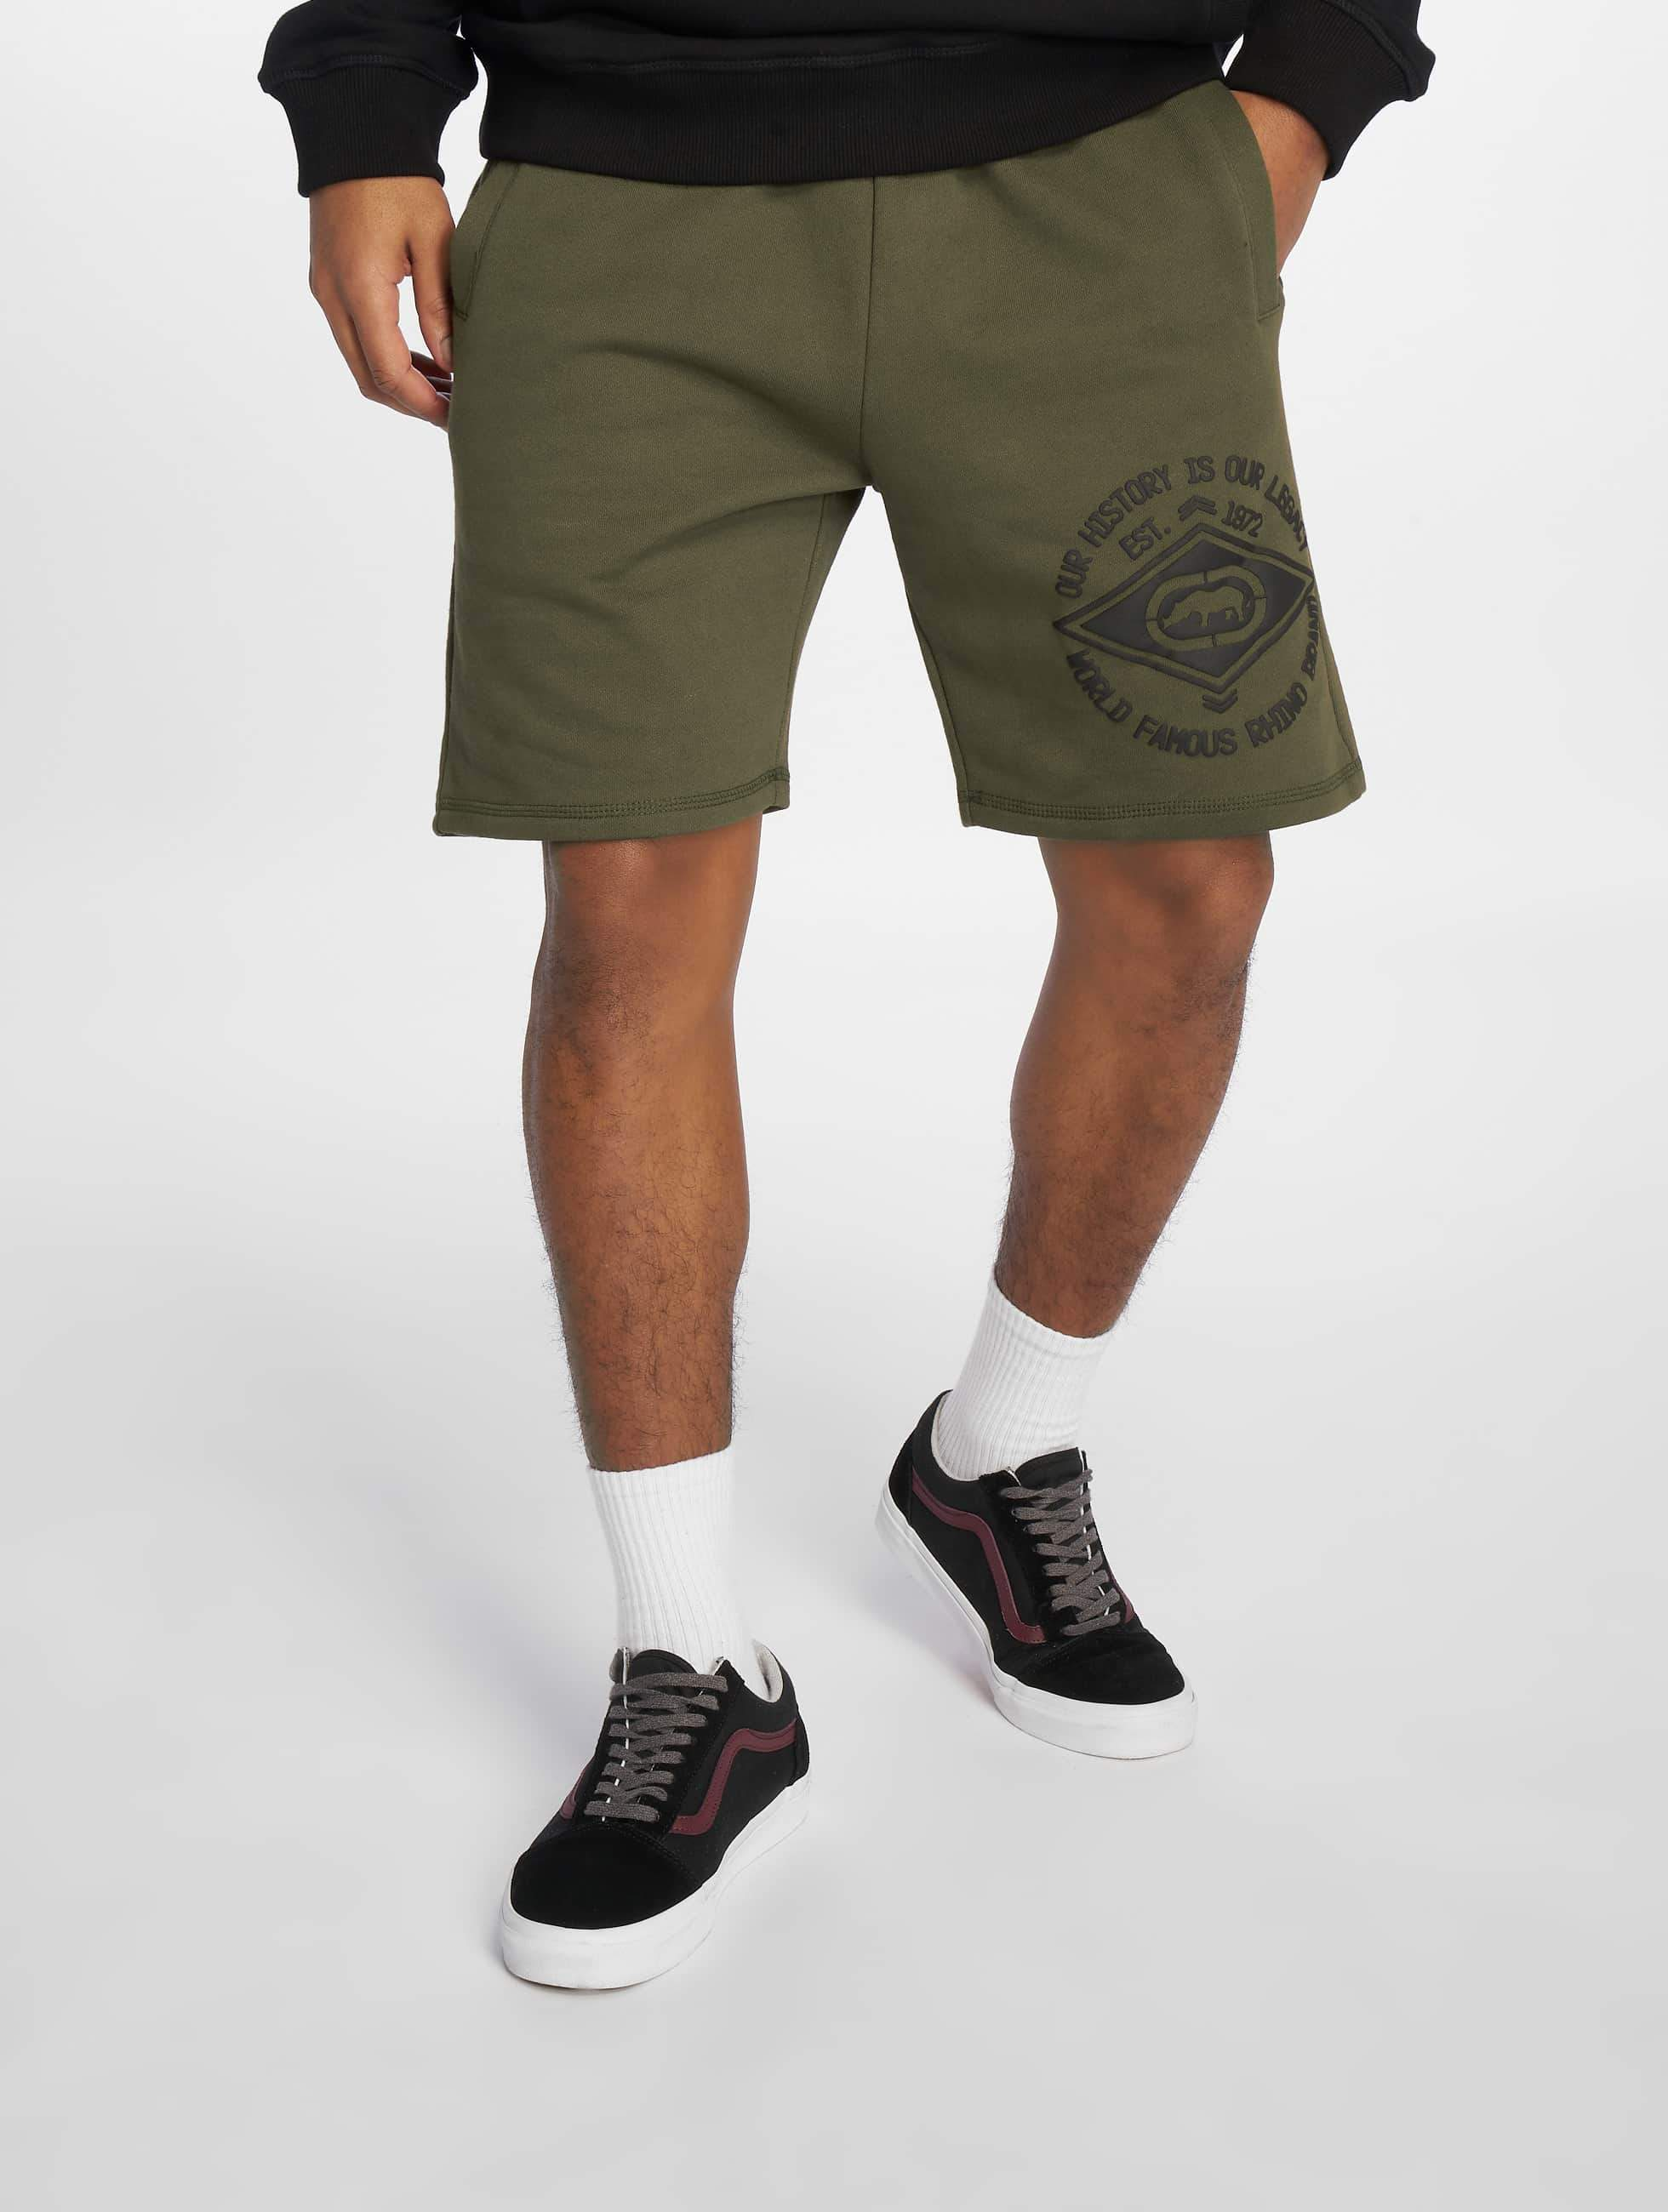 Ecko Unltd. / Short Inglewood in olive XL